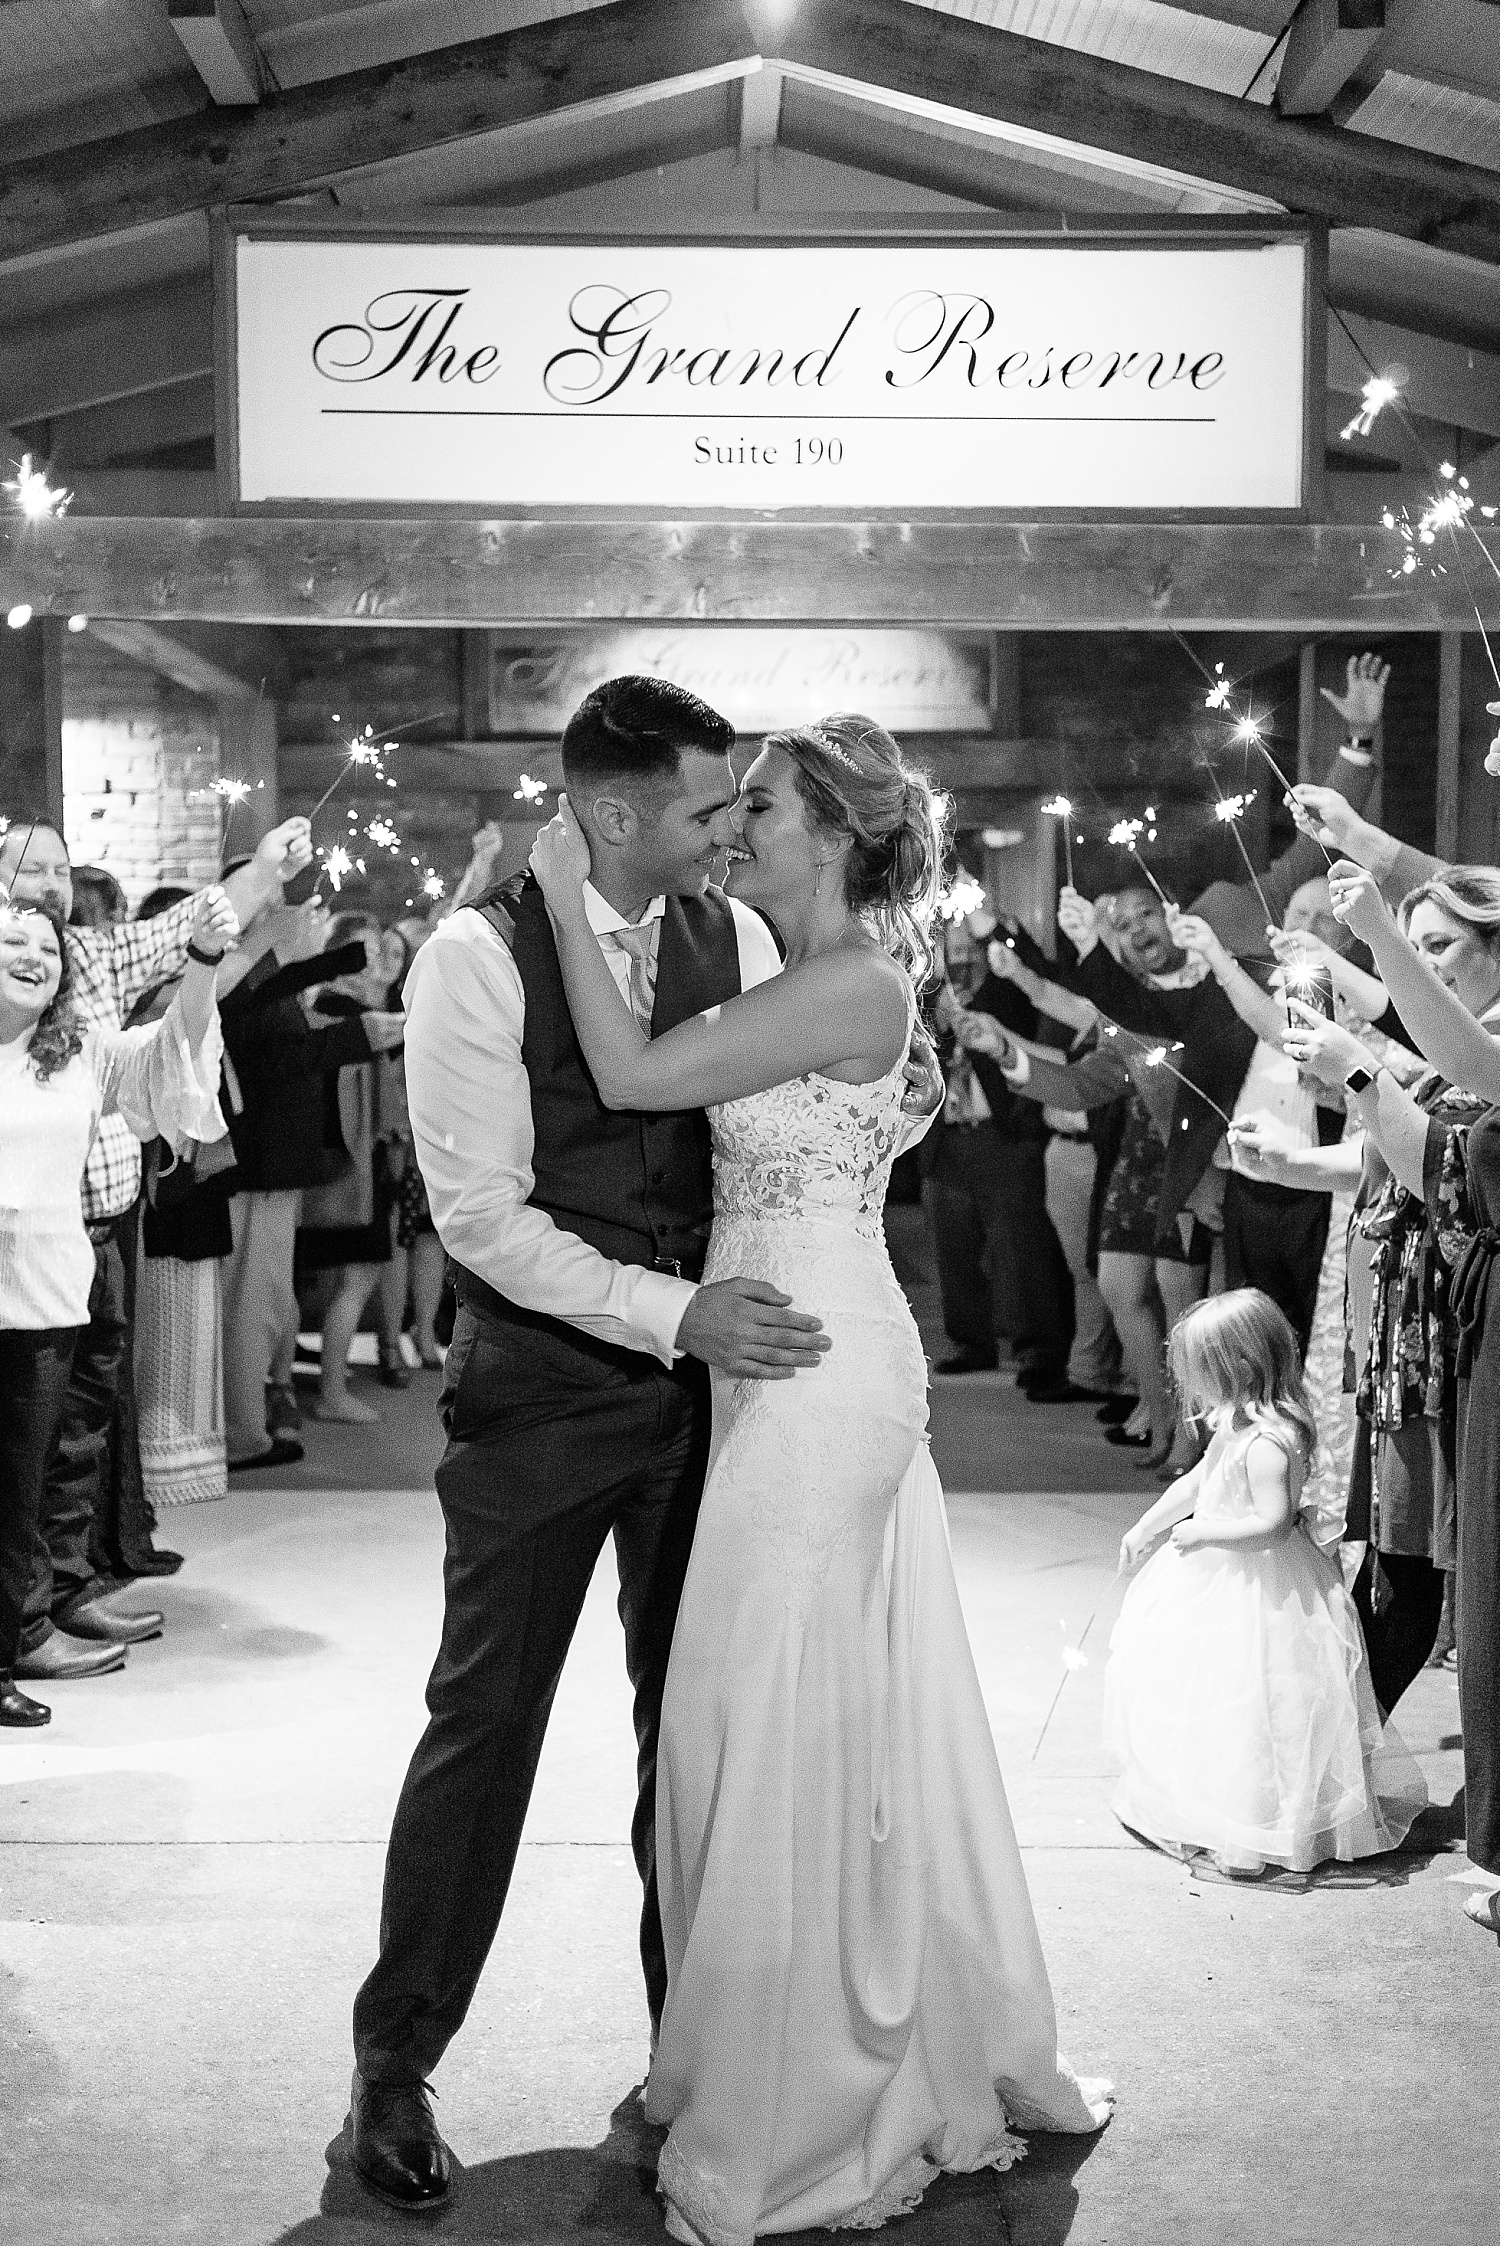 One of our favorite sparkler shots ever!